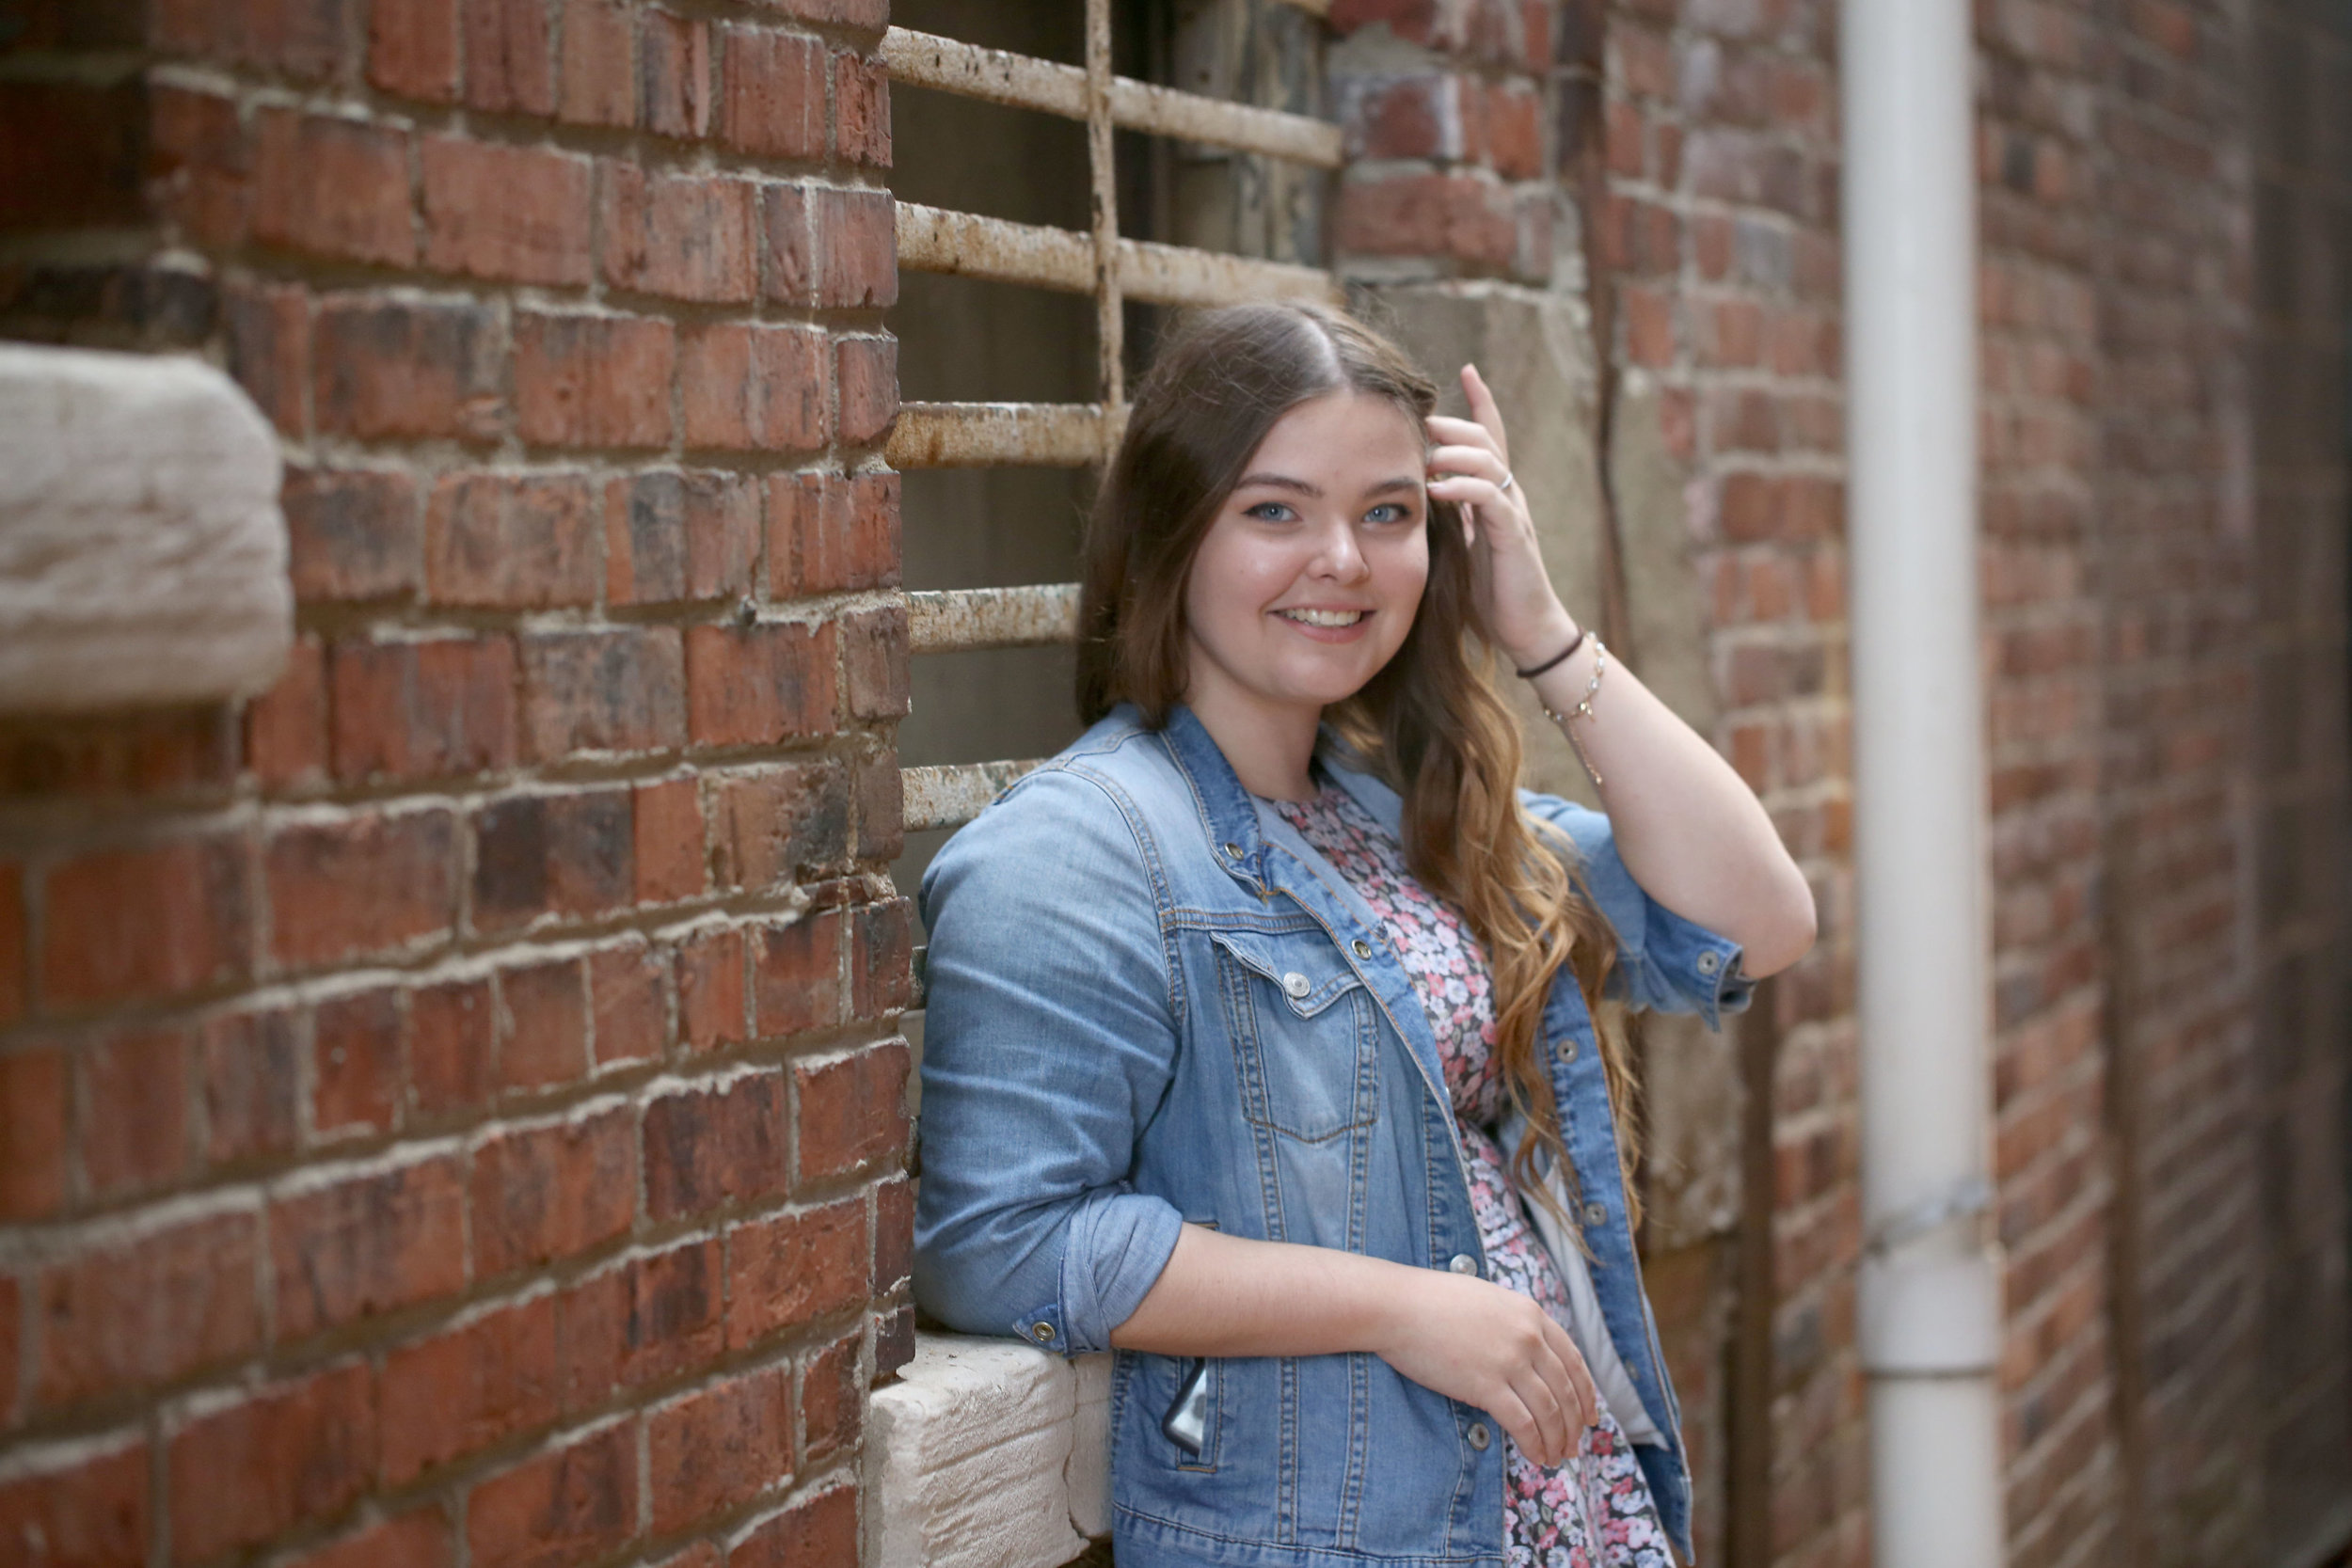 madison_whitney_senior_18_0141.jpg